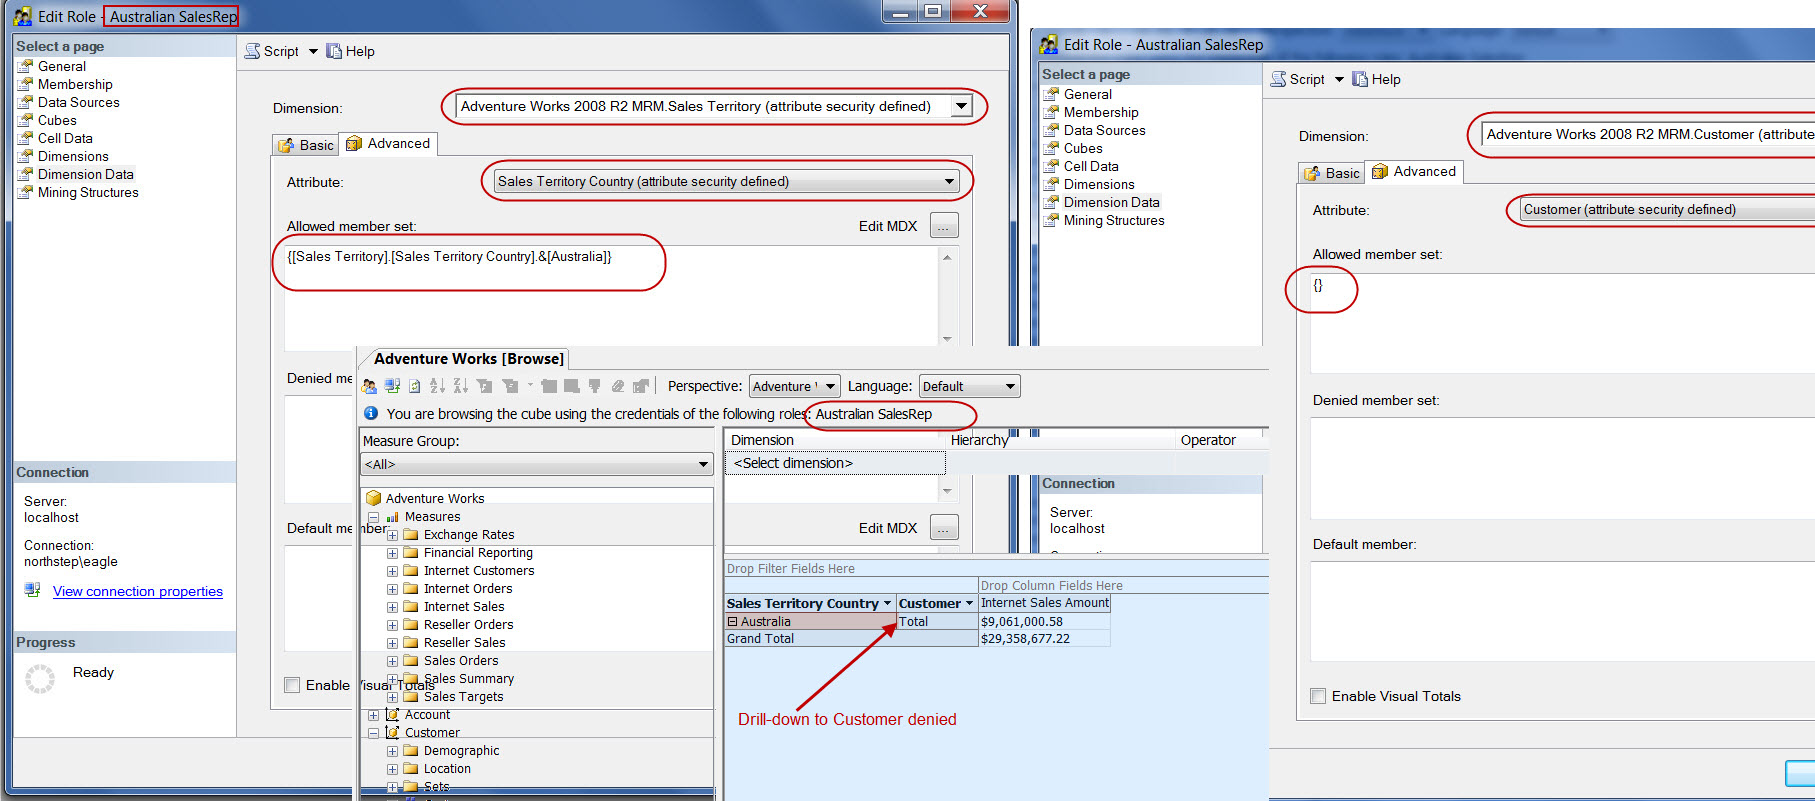 Screen Capture 4 - Australian SalesRep Role with no access to Customer Data